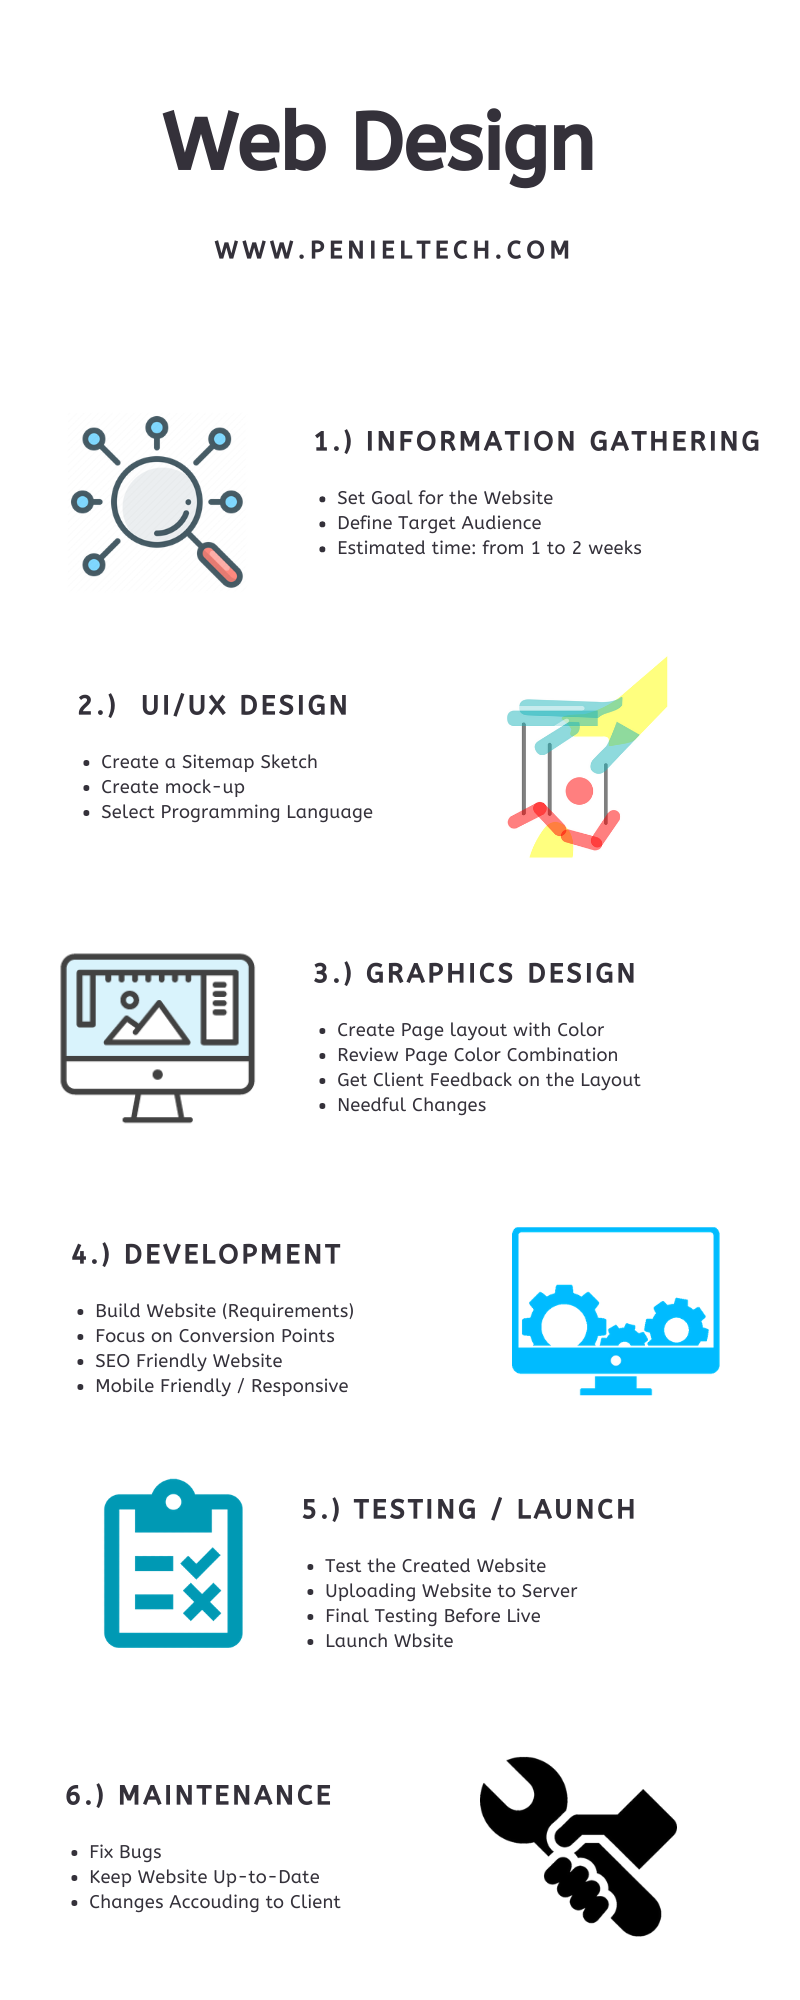 Flow of Website Design and Development